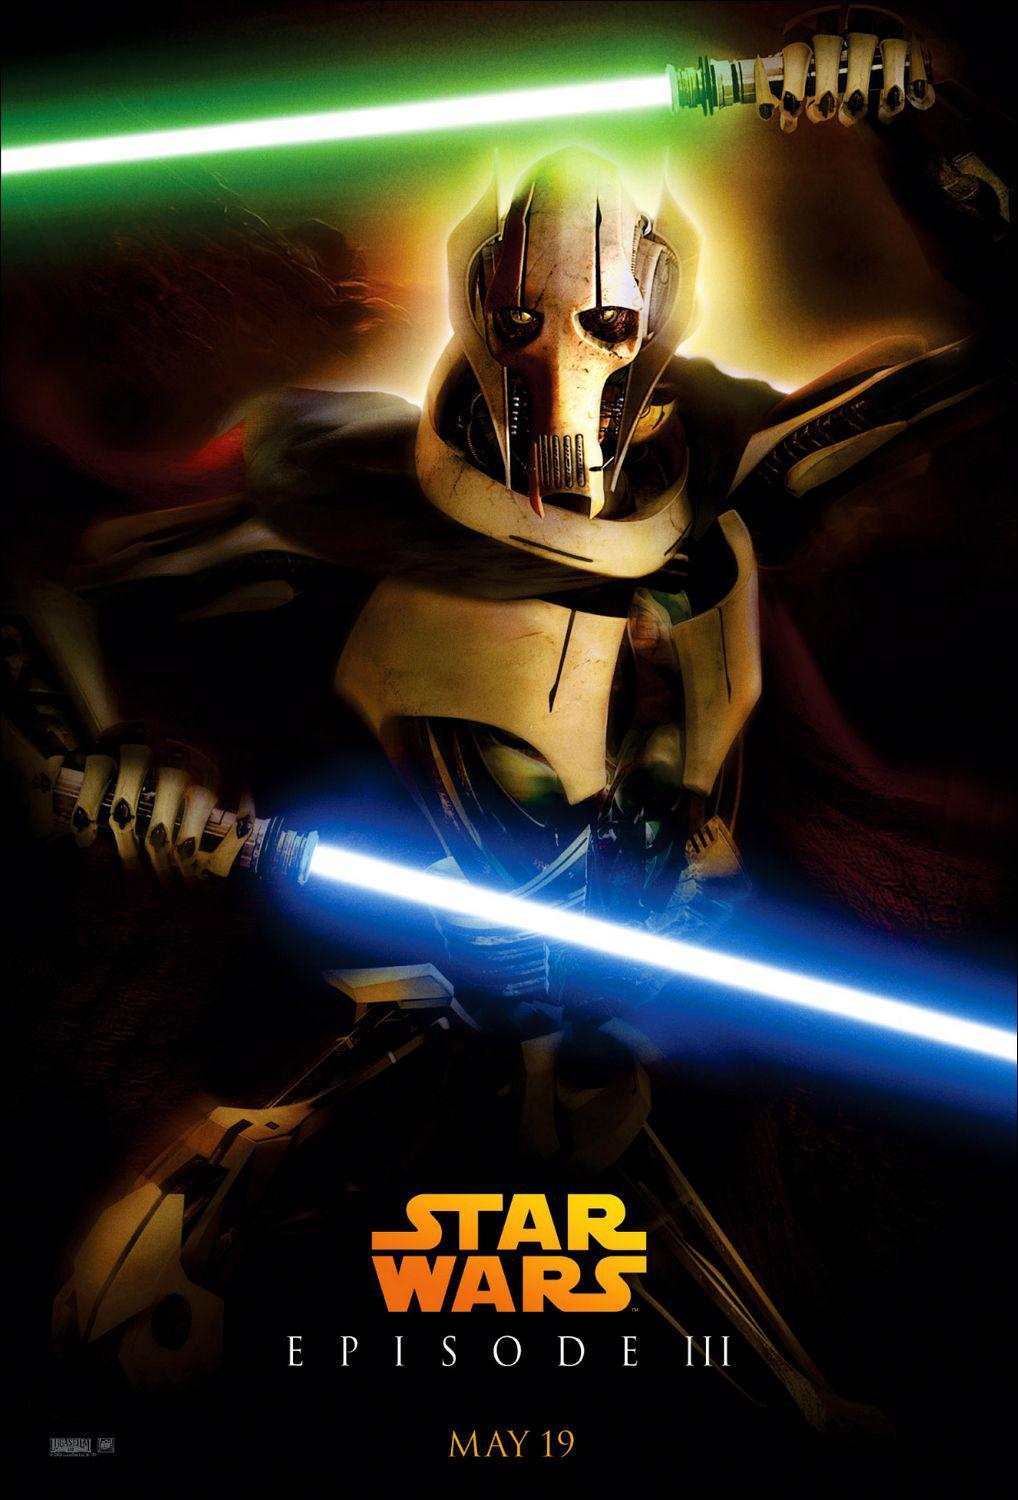 Star Wars 3 - la vendetta dei Sith - Revenge of the Sith - Robot